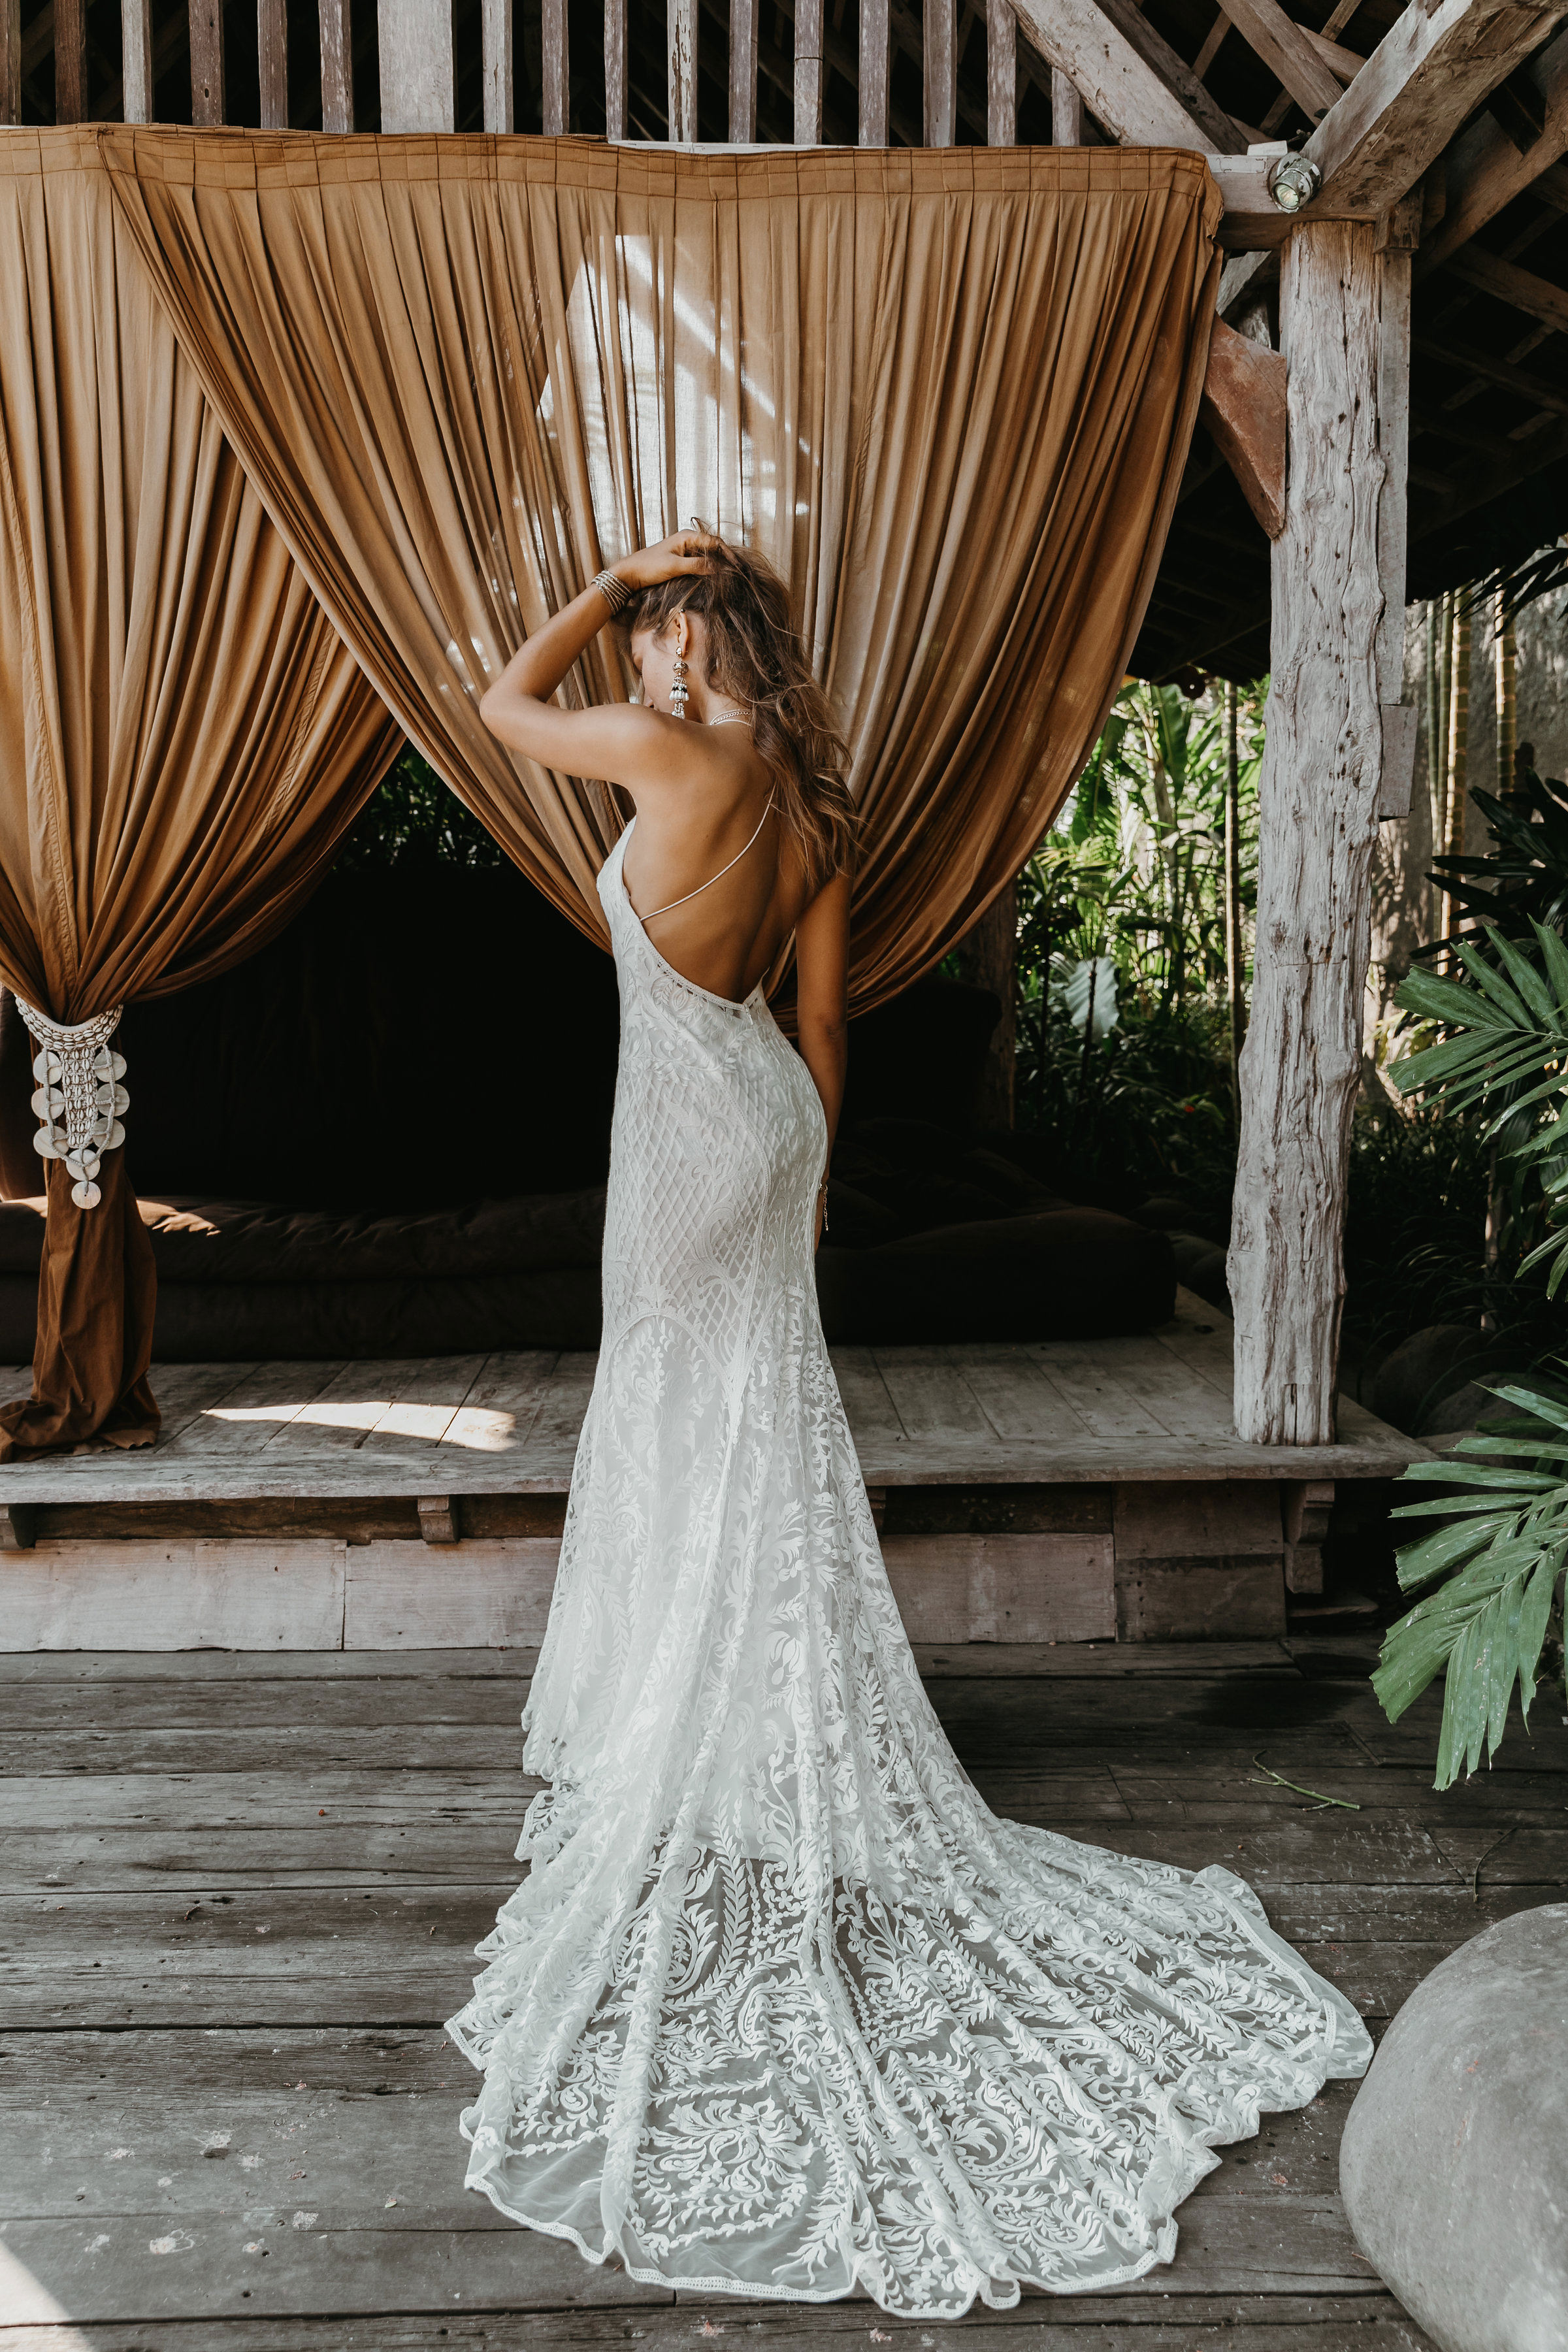 Reef lovers society wedding dresses Wedding Dress wedding dresses bridal shop store gowns christchurch wellington